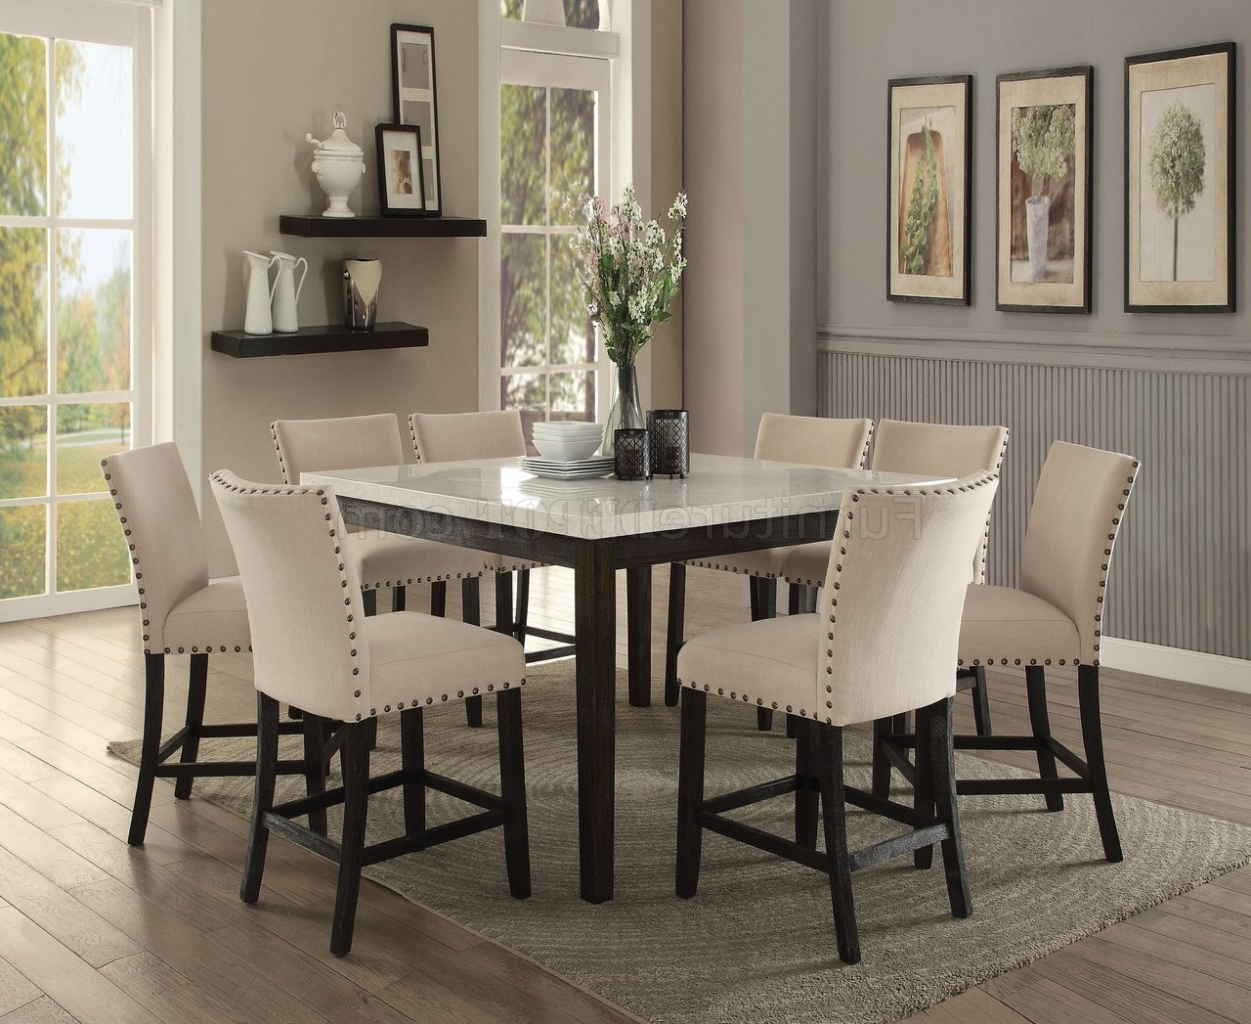 Best And Newest Nolan Counter Height Table 5pc Set 72855 White Marble Top With Regard To Dallin Bar Height Dining Tables (View 14 of 20)